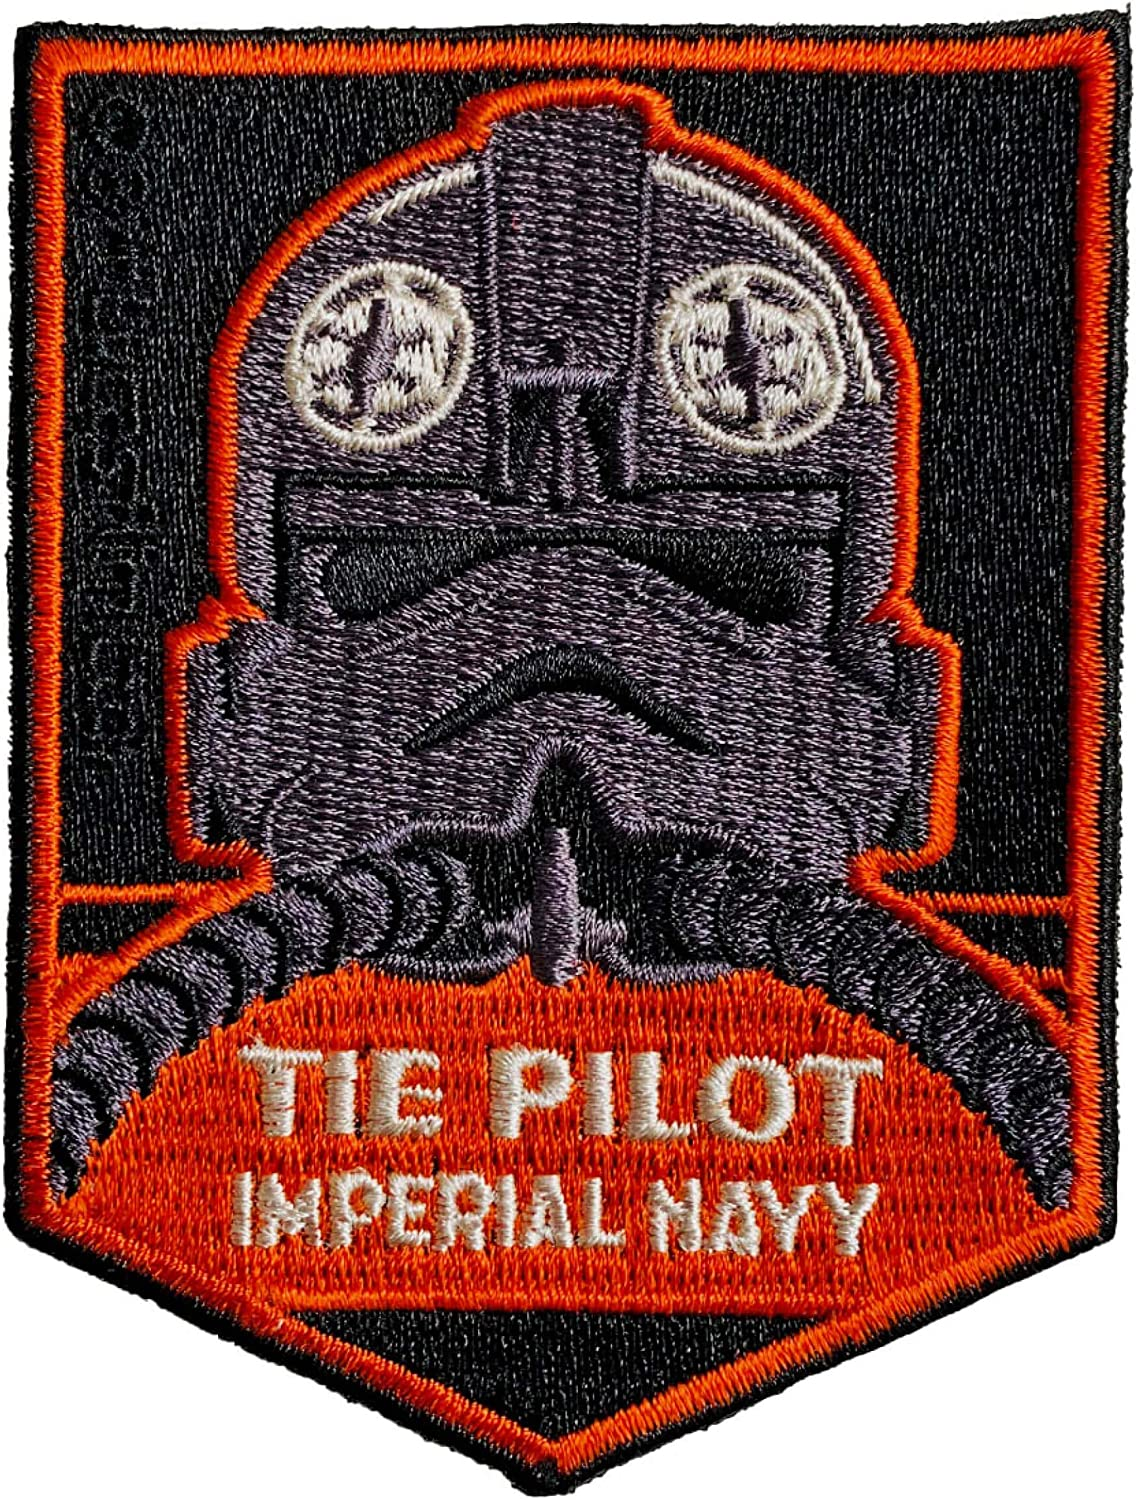 Star wars Logo Patch Embroidered Iron on Imperial Storm Trooper Emblem Badge